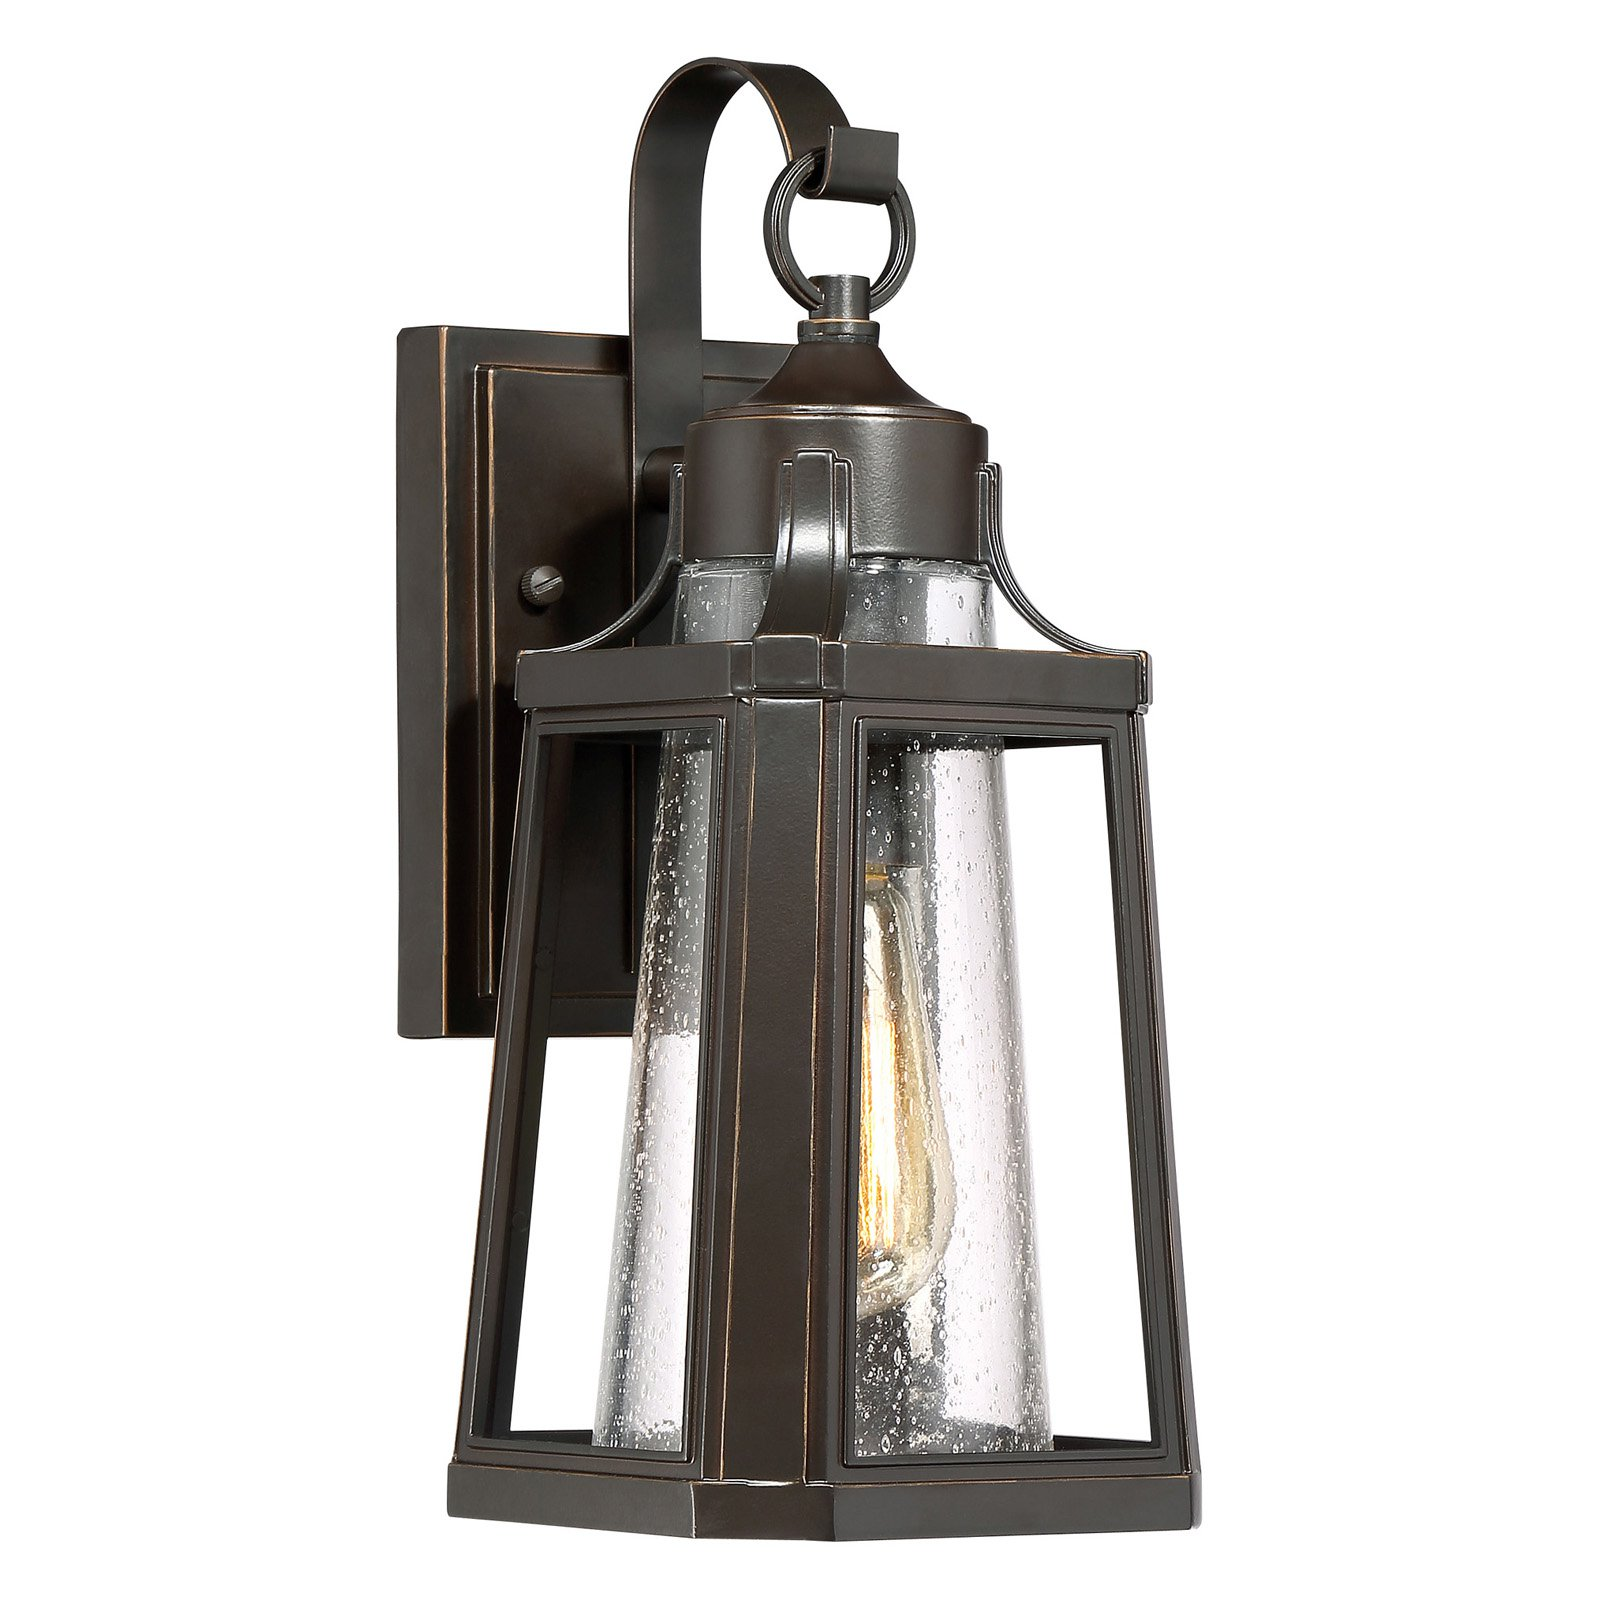 Quoizel Lighthouse LTE840 Wall Sconce